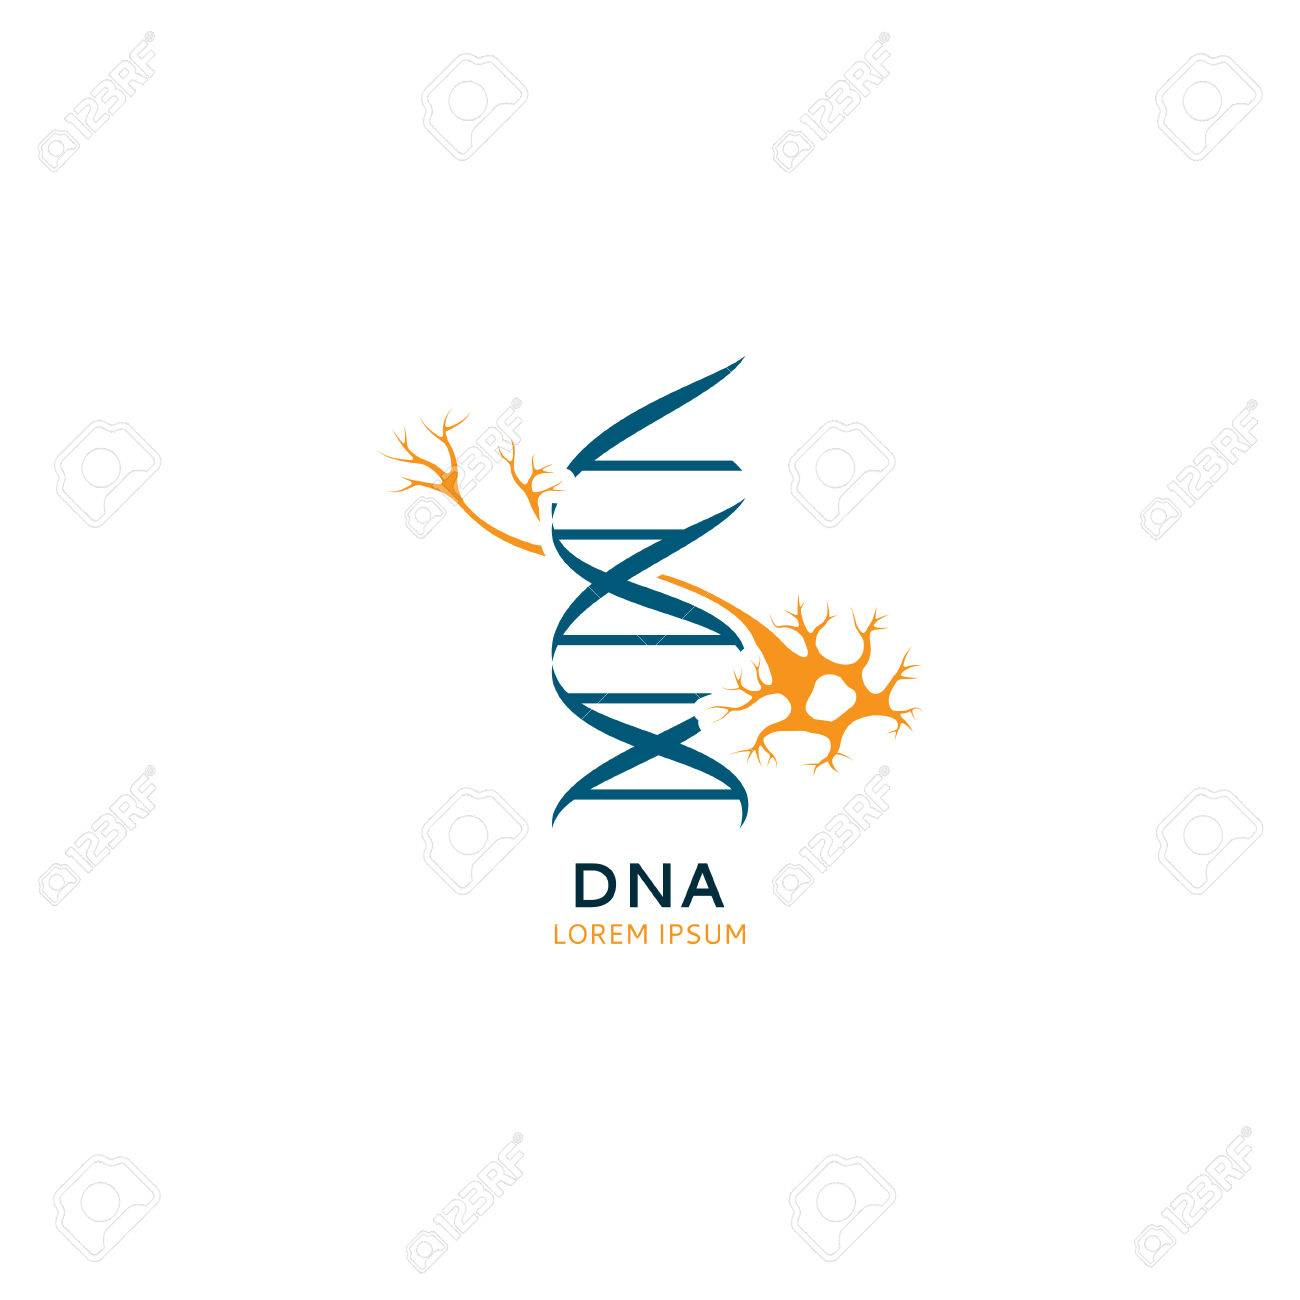 Dna Template | Dna Template With Sign Nerves Vector Dna Sketch For Your Design